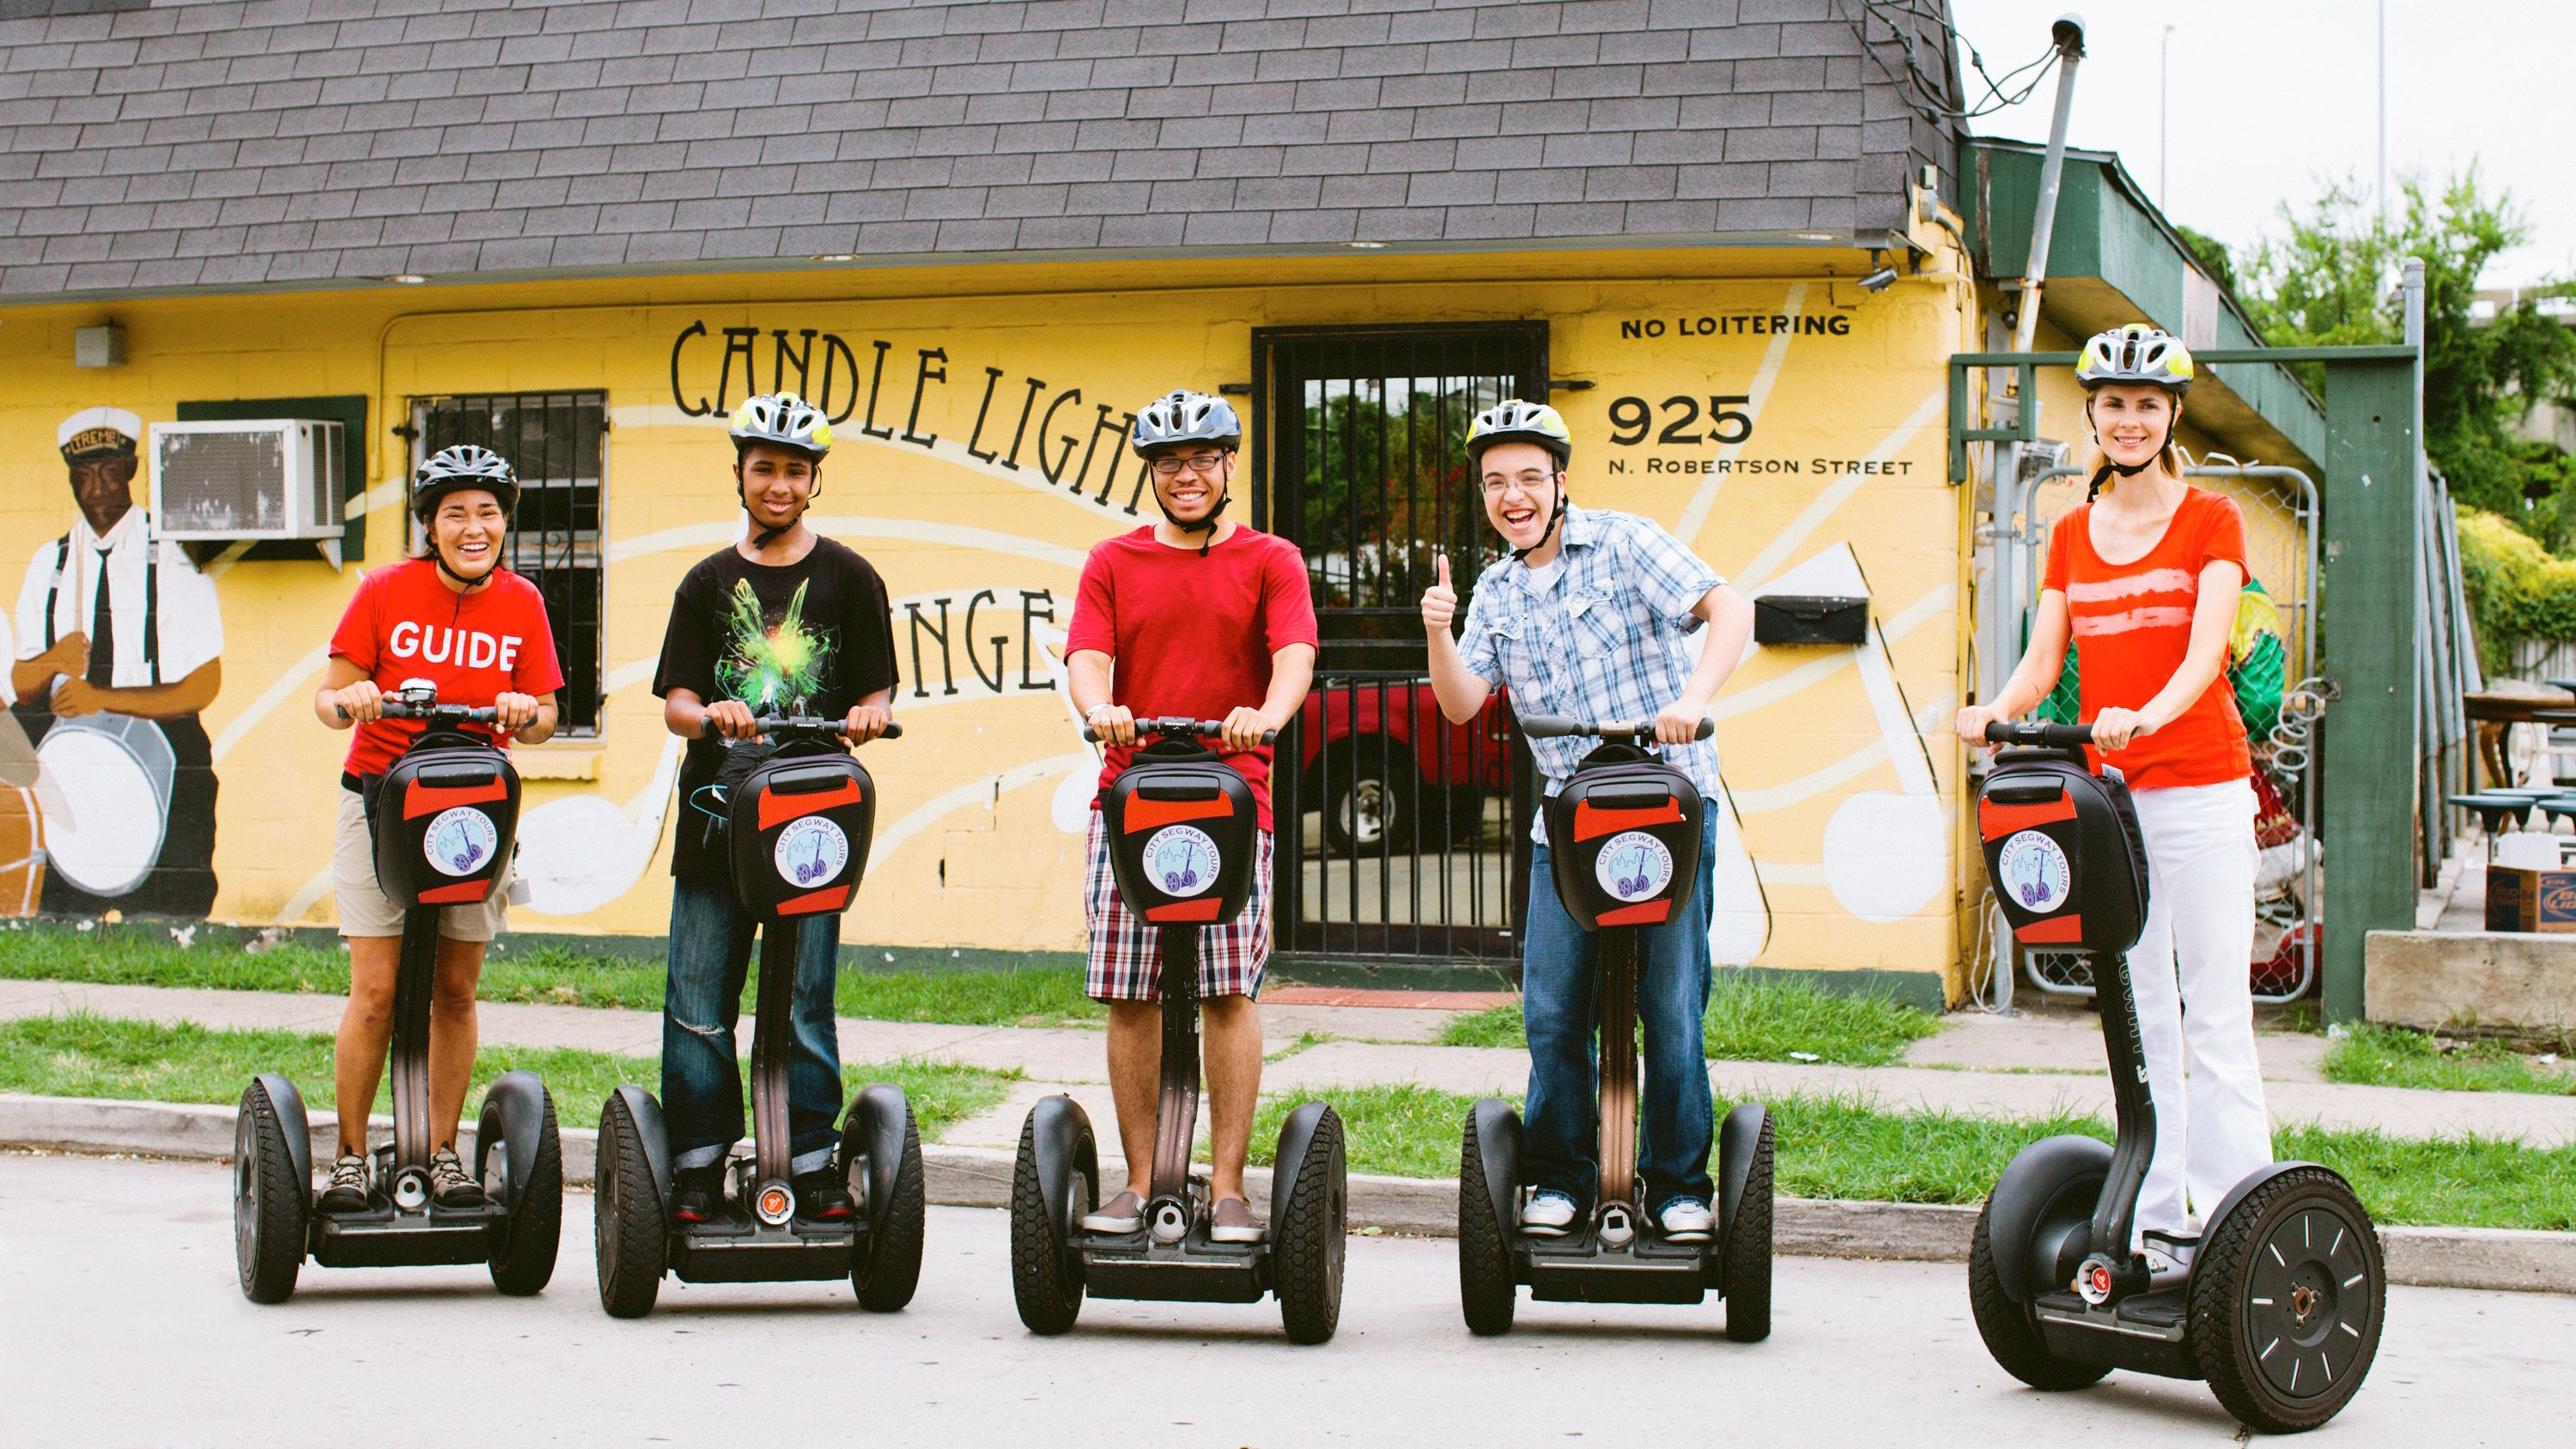 Group on the New Orleans Express Segway Tour